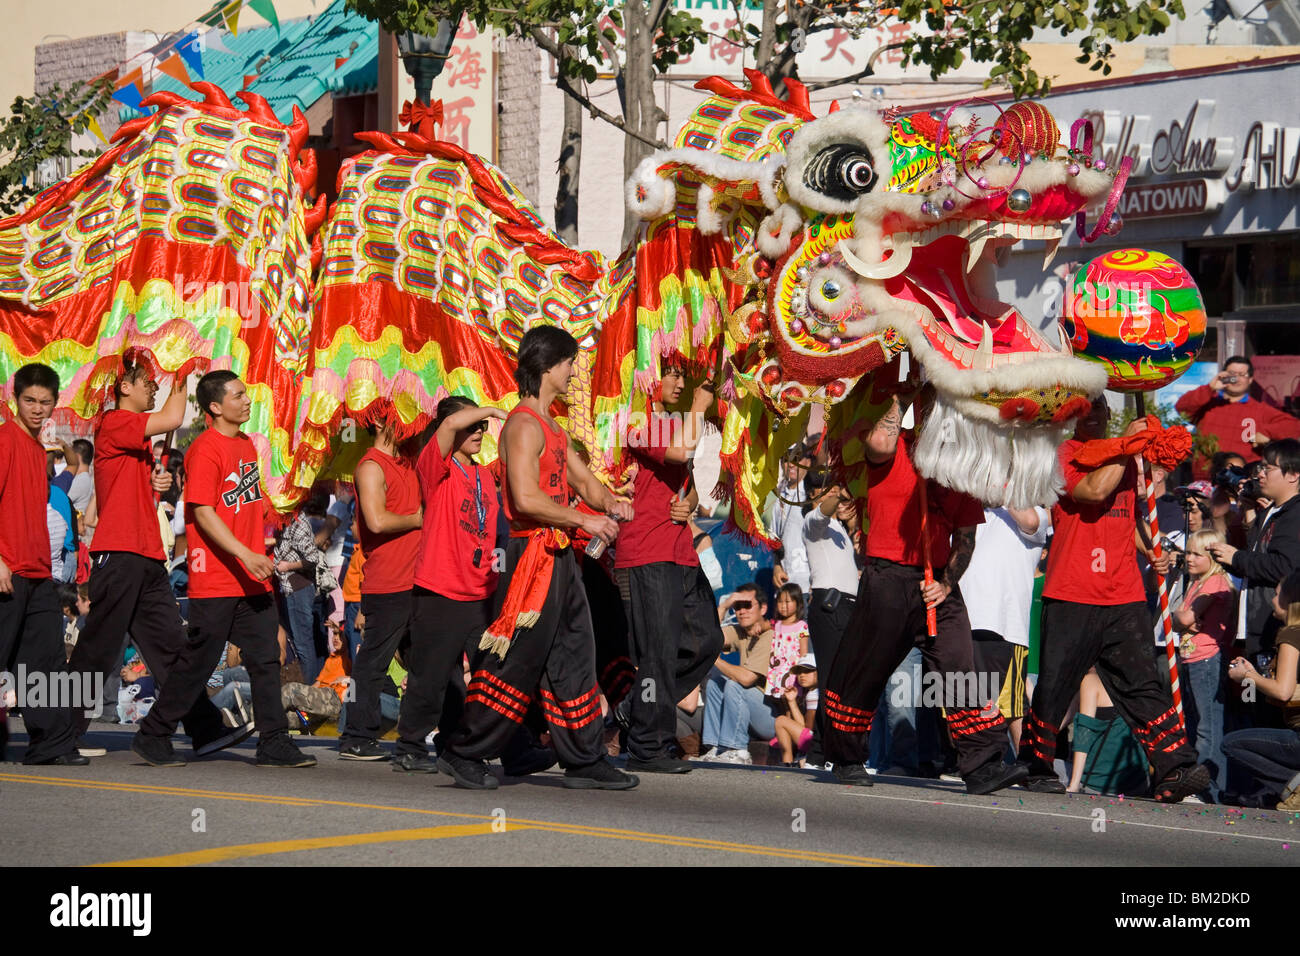 Golden Dragon Parade, Chinese New Year Festival, Chinatown, Los Angeles, California, USA - Stock Image